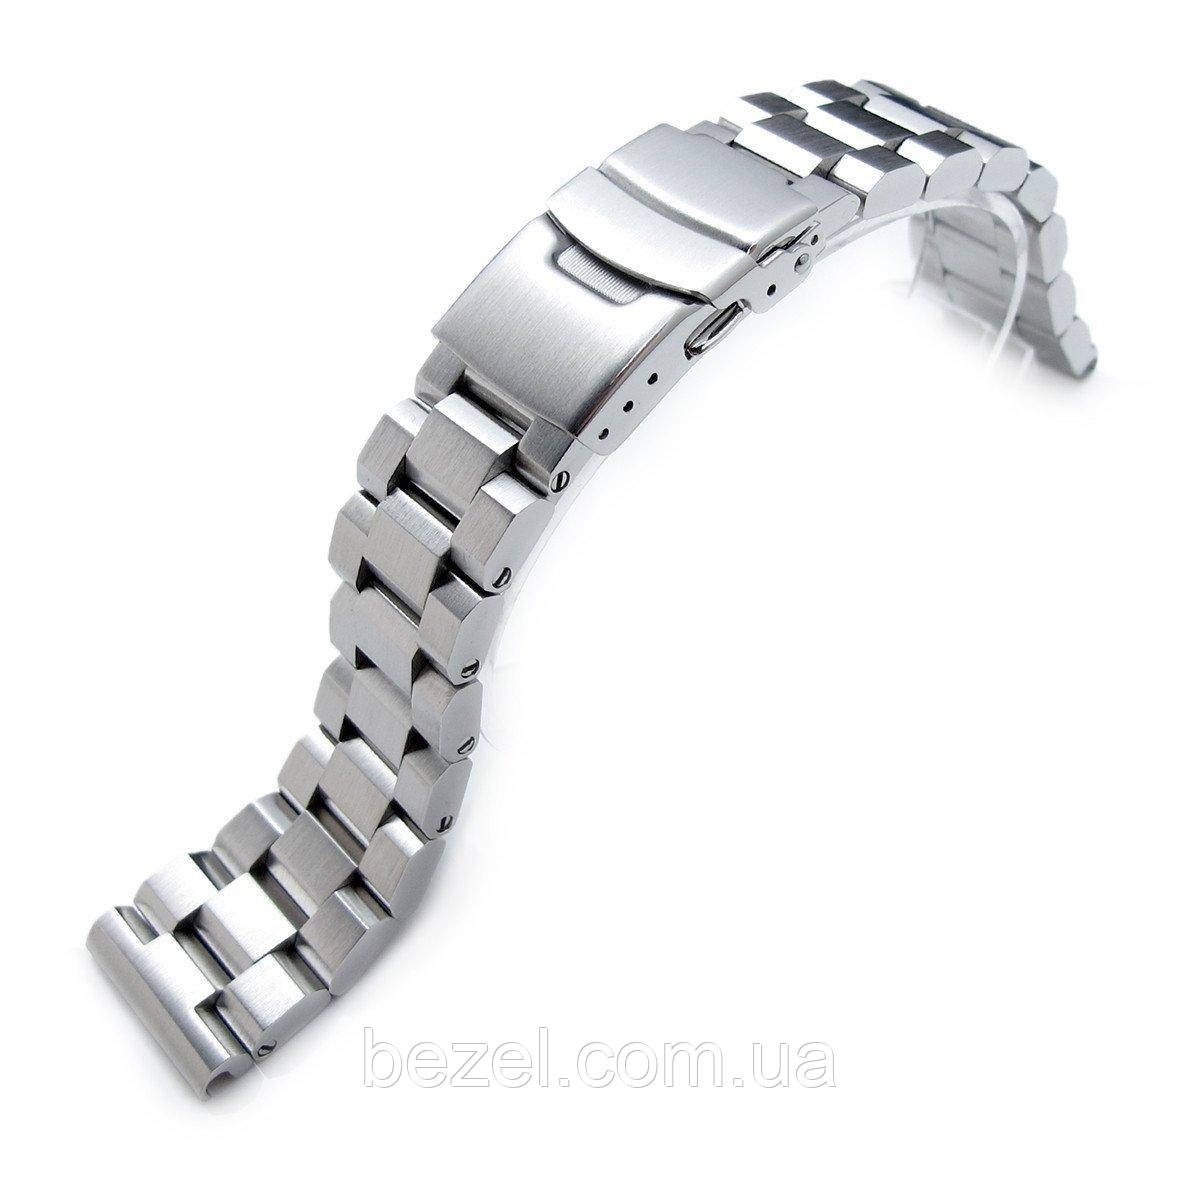 21.5mm Hexad Oyster 316L Stainless Steel Watch Band for Seiko Tuna, Diver Clasp Brushed